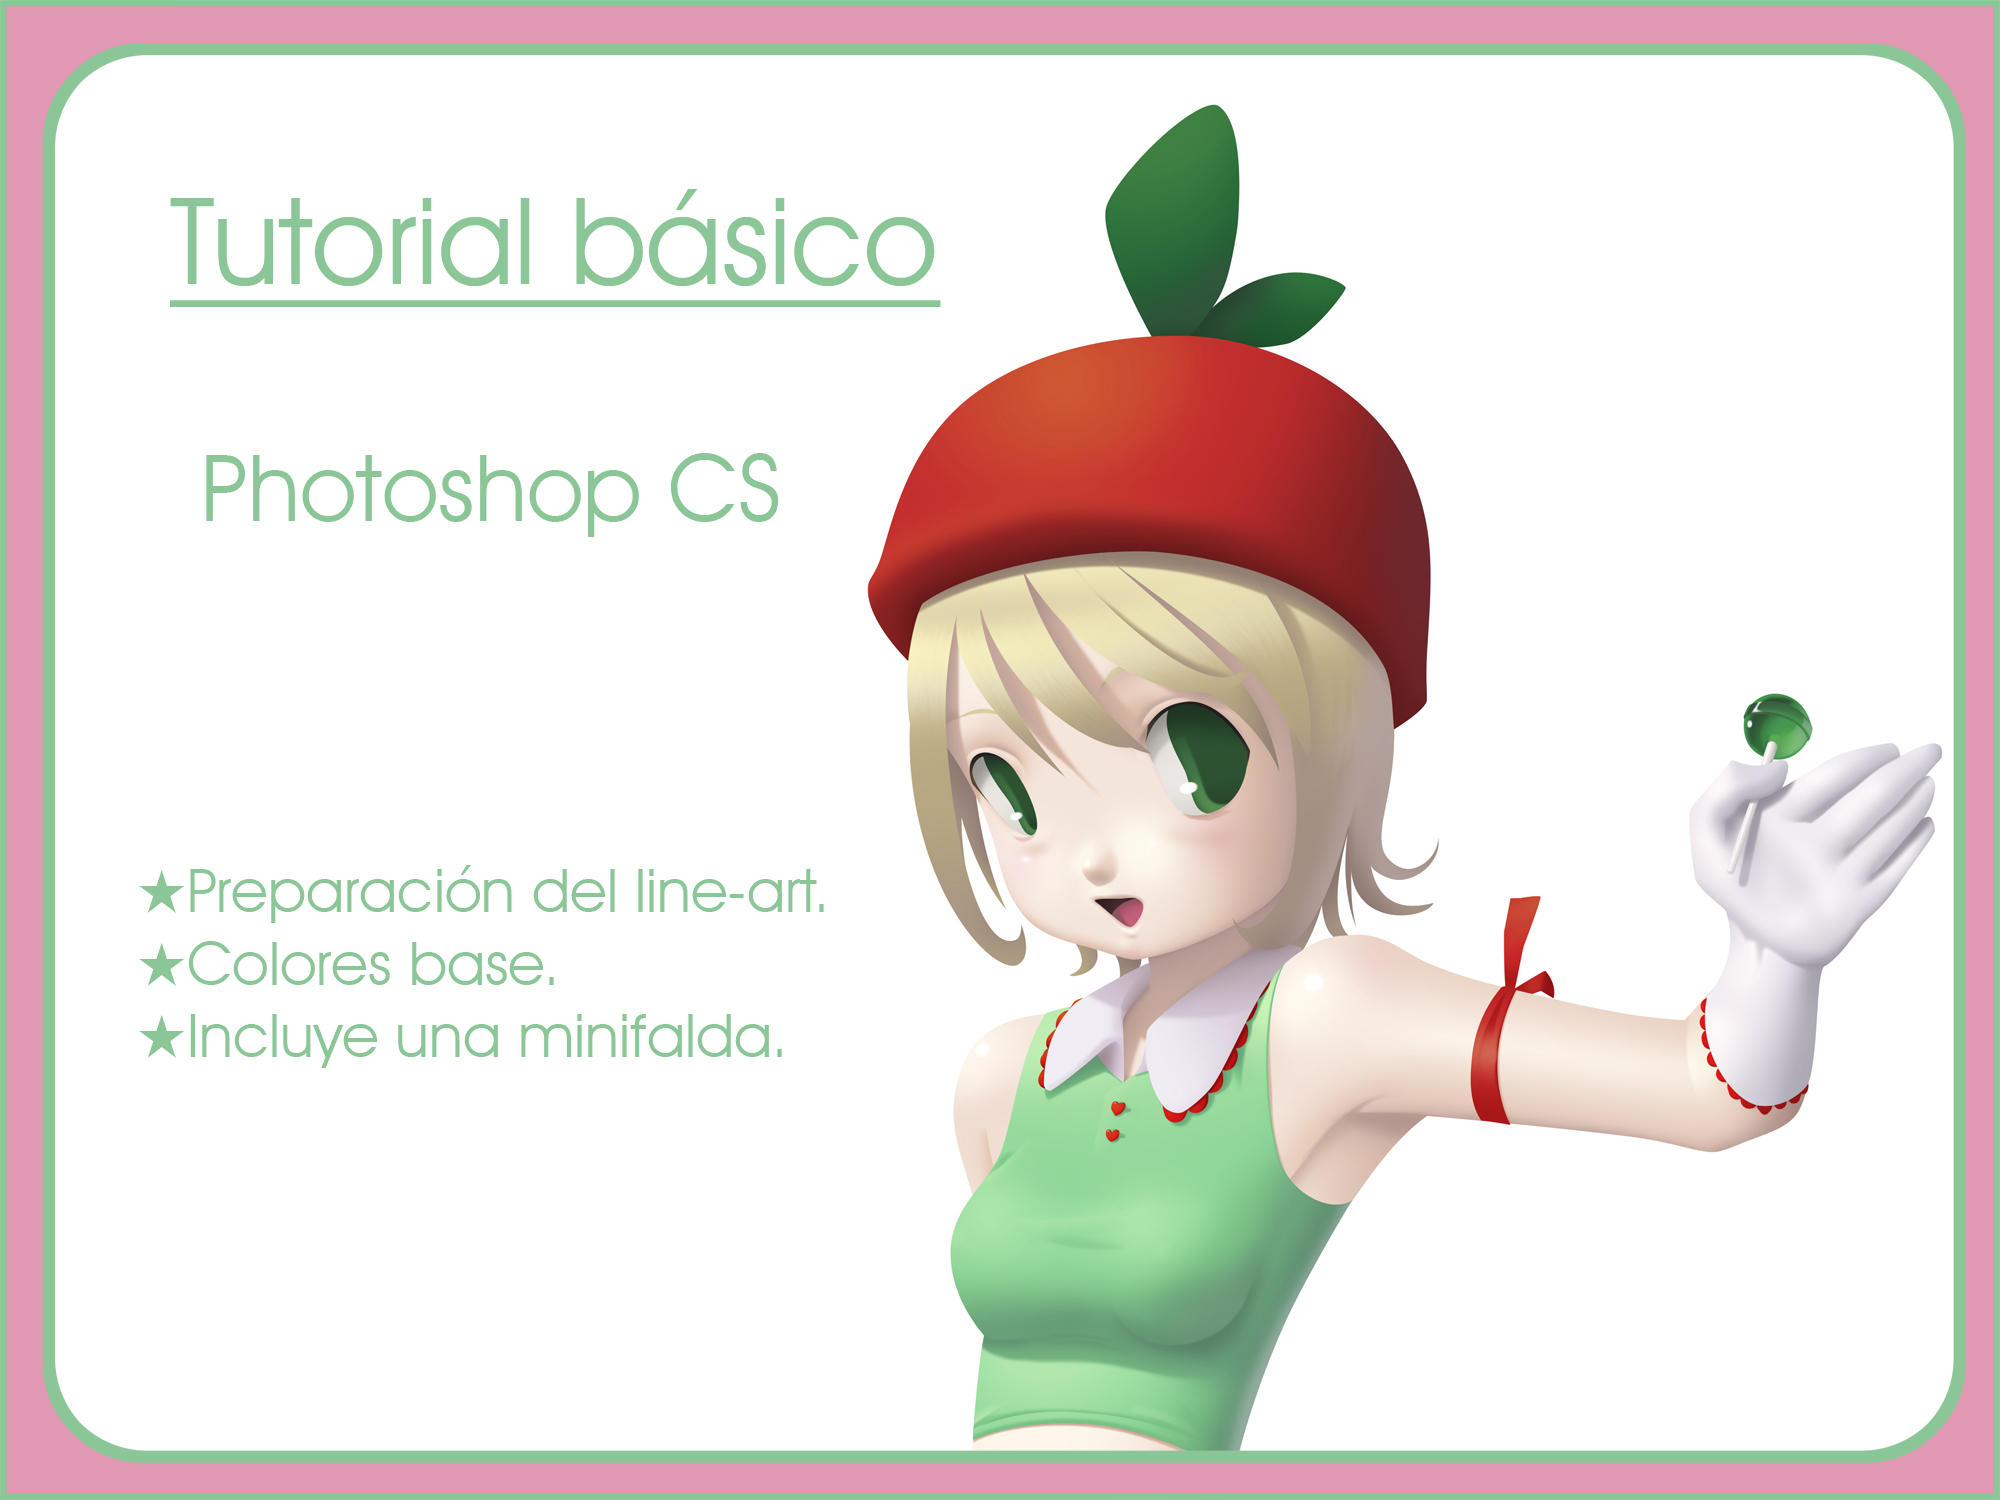 Tutorial basico photoshop CS by ALKEMANUBIS